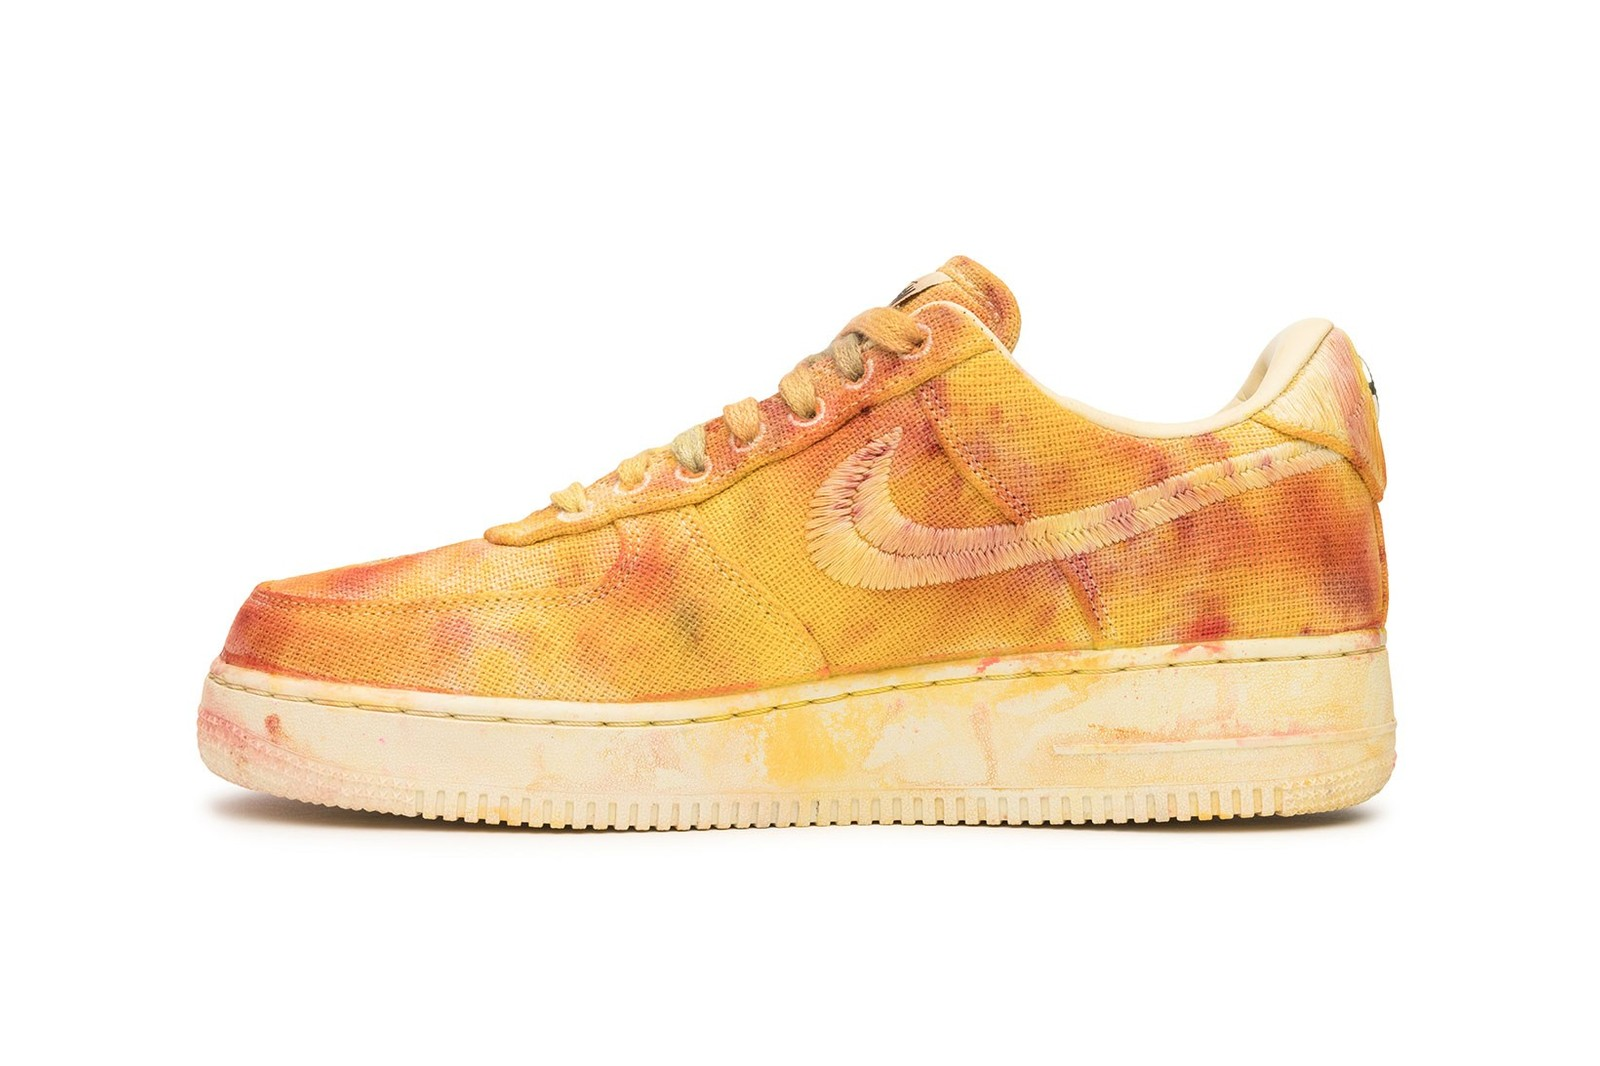 Stussy Nike Air Force 1 Sneaker Hand Dyed Collaboration Blue Yellow Grey Gray Red Green